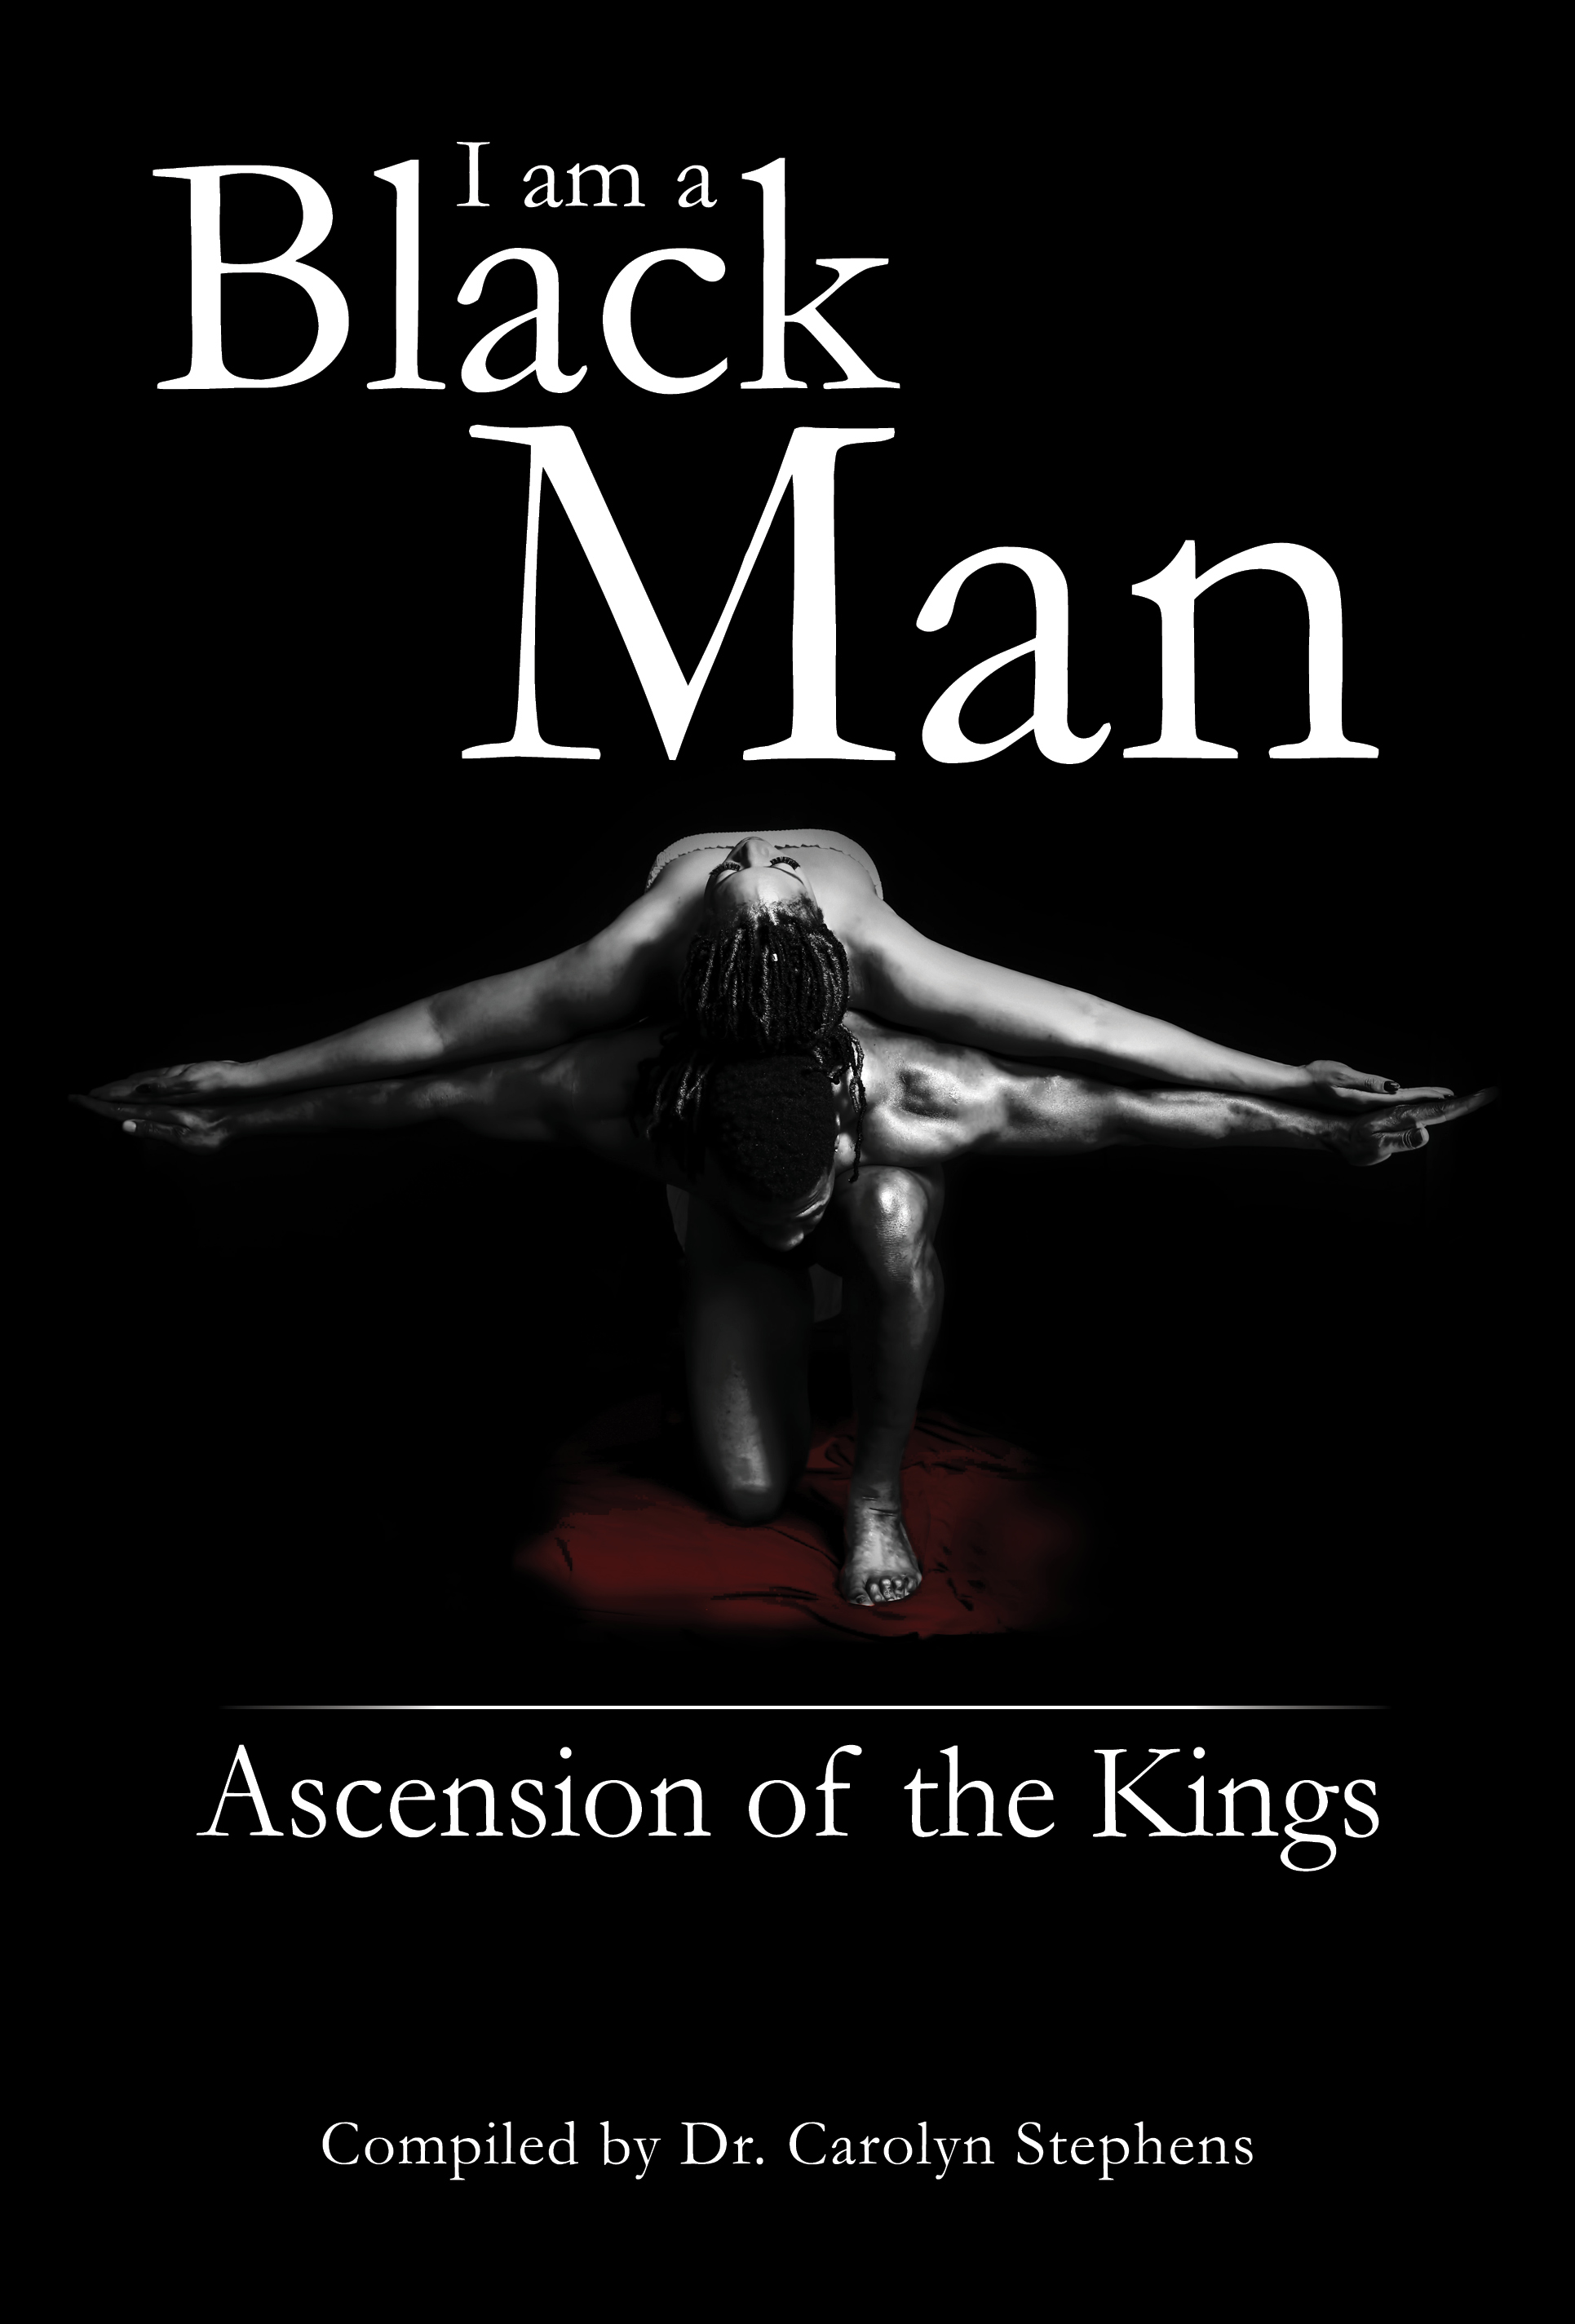 I Am A Black Man: Ascension of the Kings